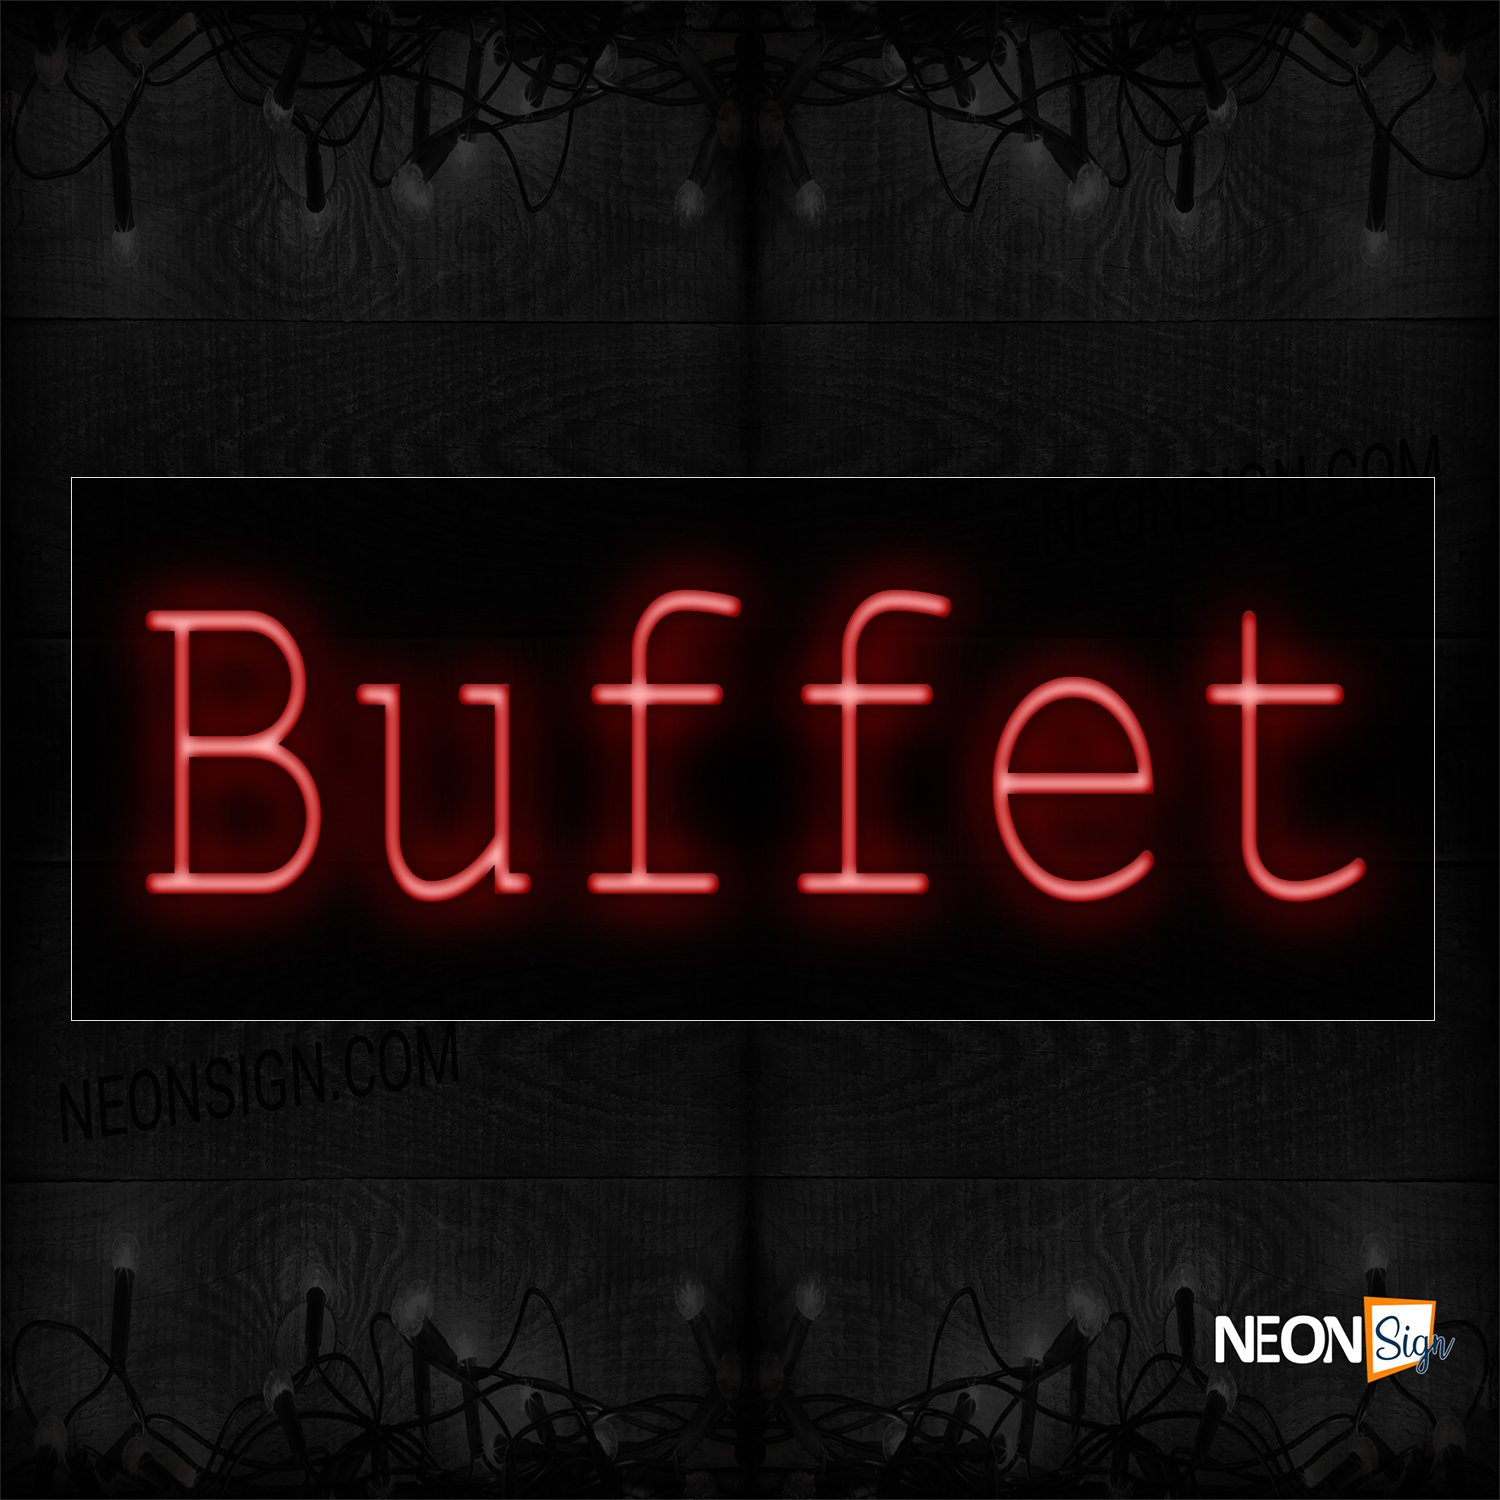 Image of Buffet Capitalized Text Neon Sign